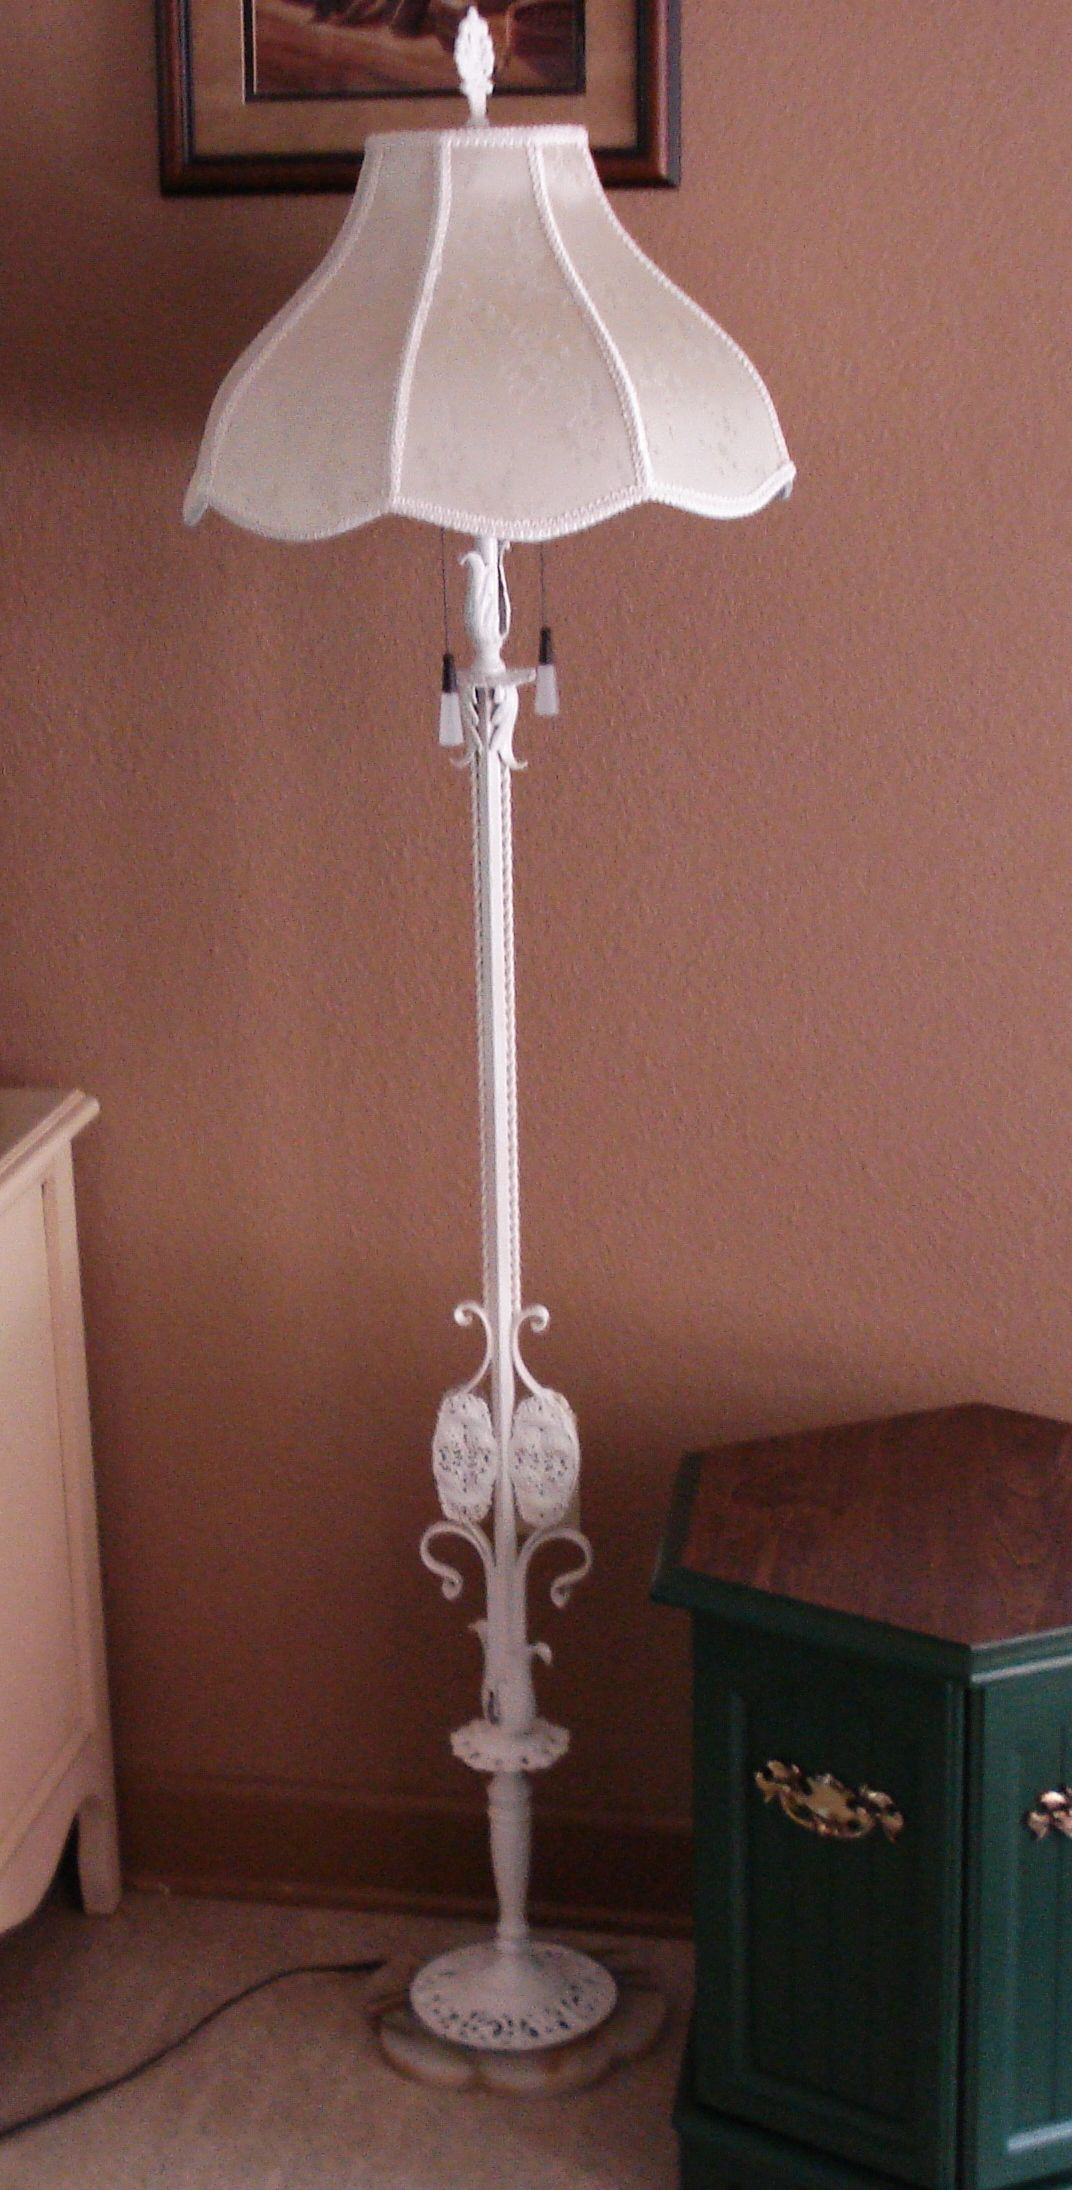 My Sister Found This Old Floor Lamp In An Antiques Southern Illinois I